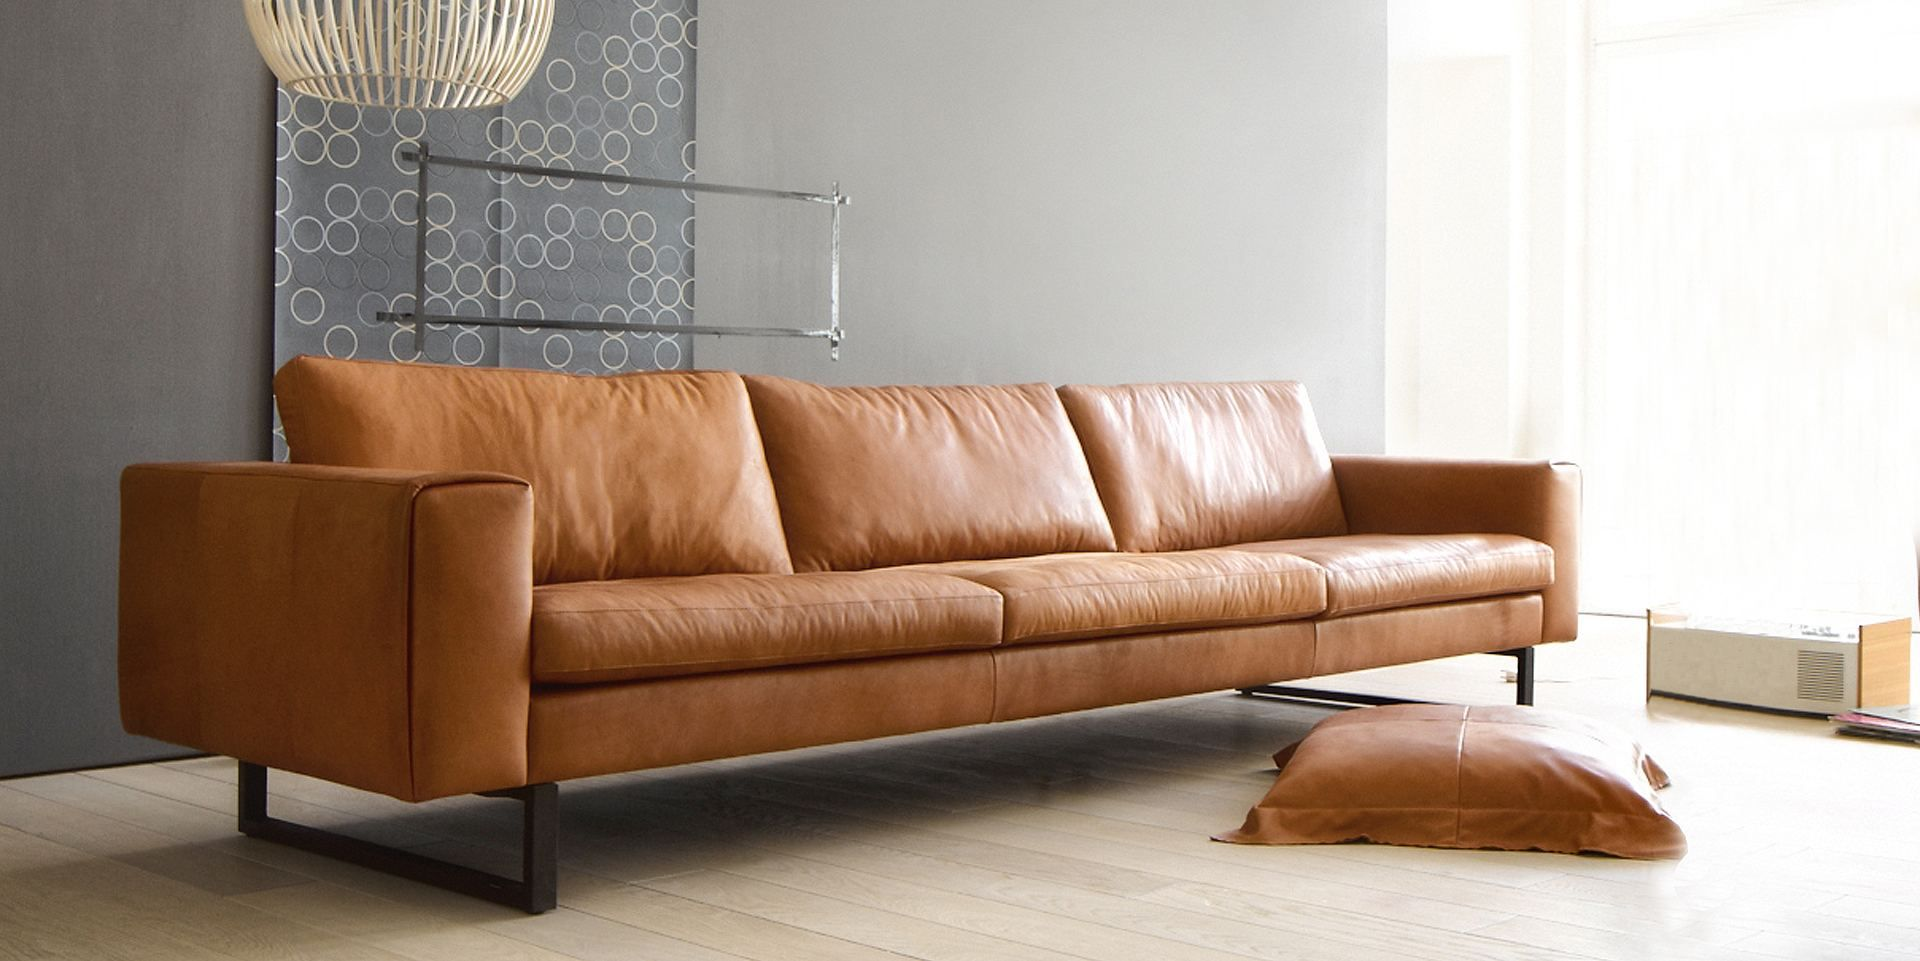 Musterring Ledersofa Wk 620 Formula › Polstermöbel › Kollektion › Wk Wohnen | Sofa, Apartment Interior, Leather Sofa